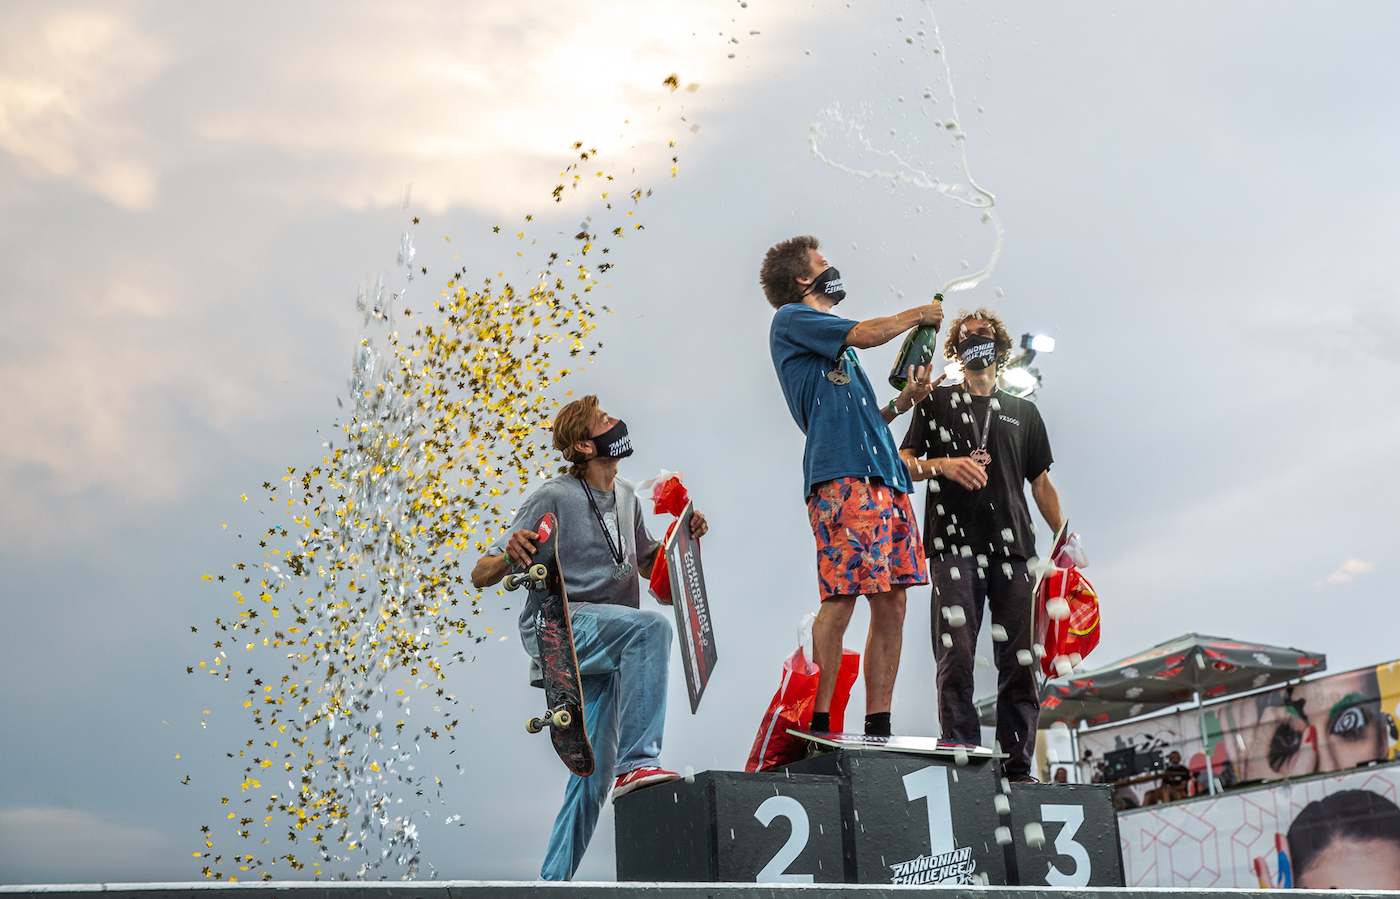 Friday at the Pannonian Challenge was marked by skate and the symbols of the urban culture